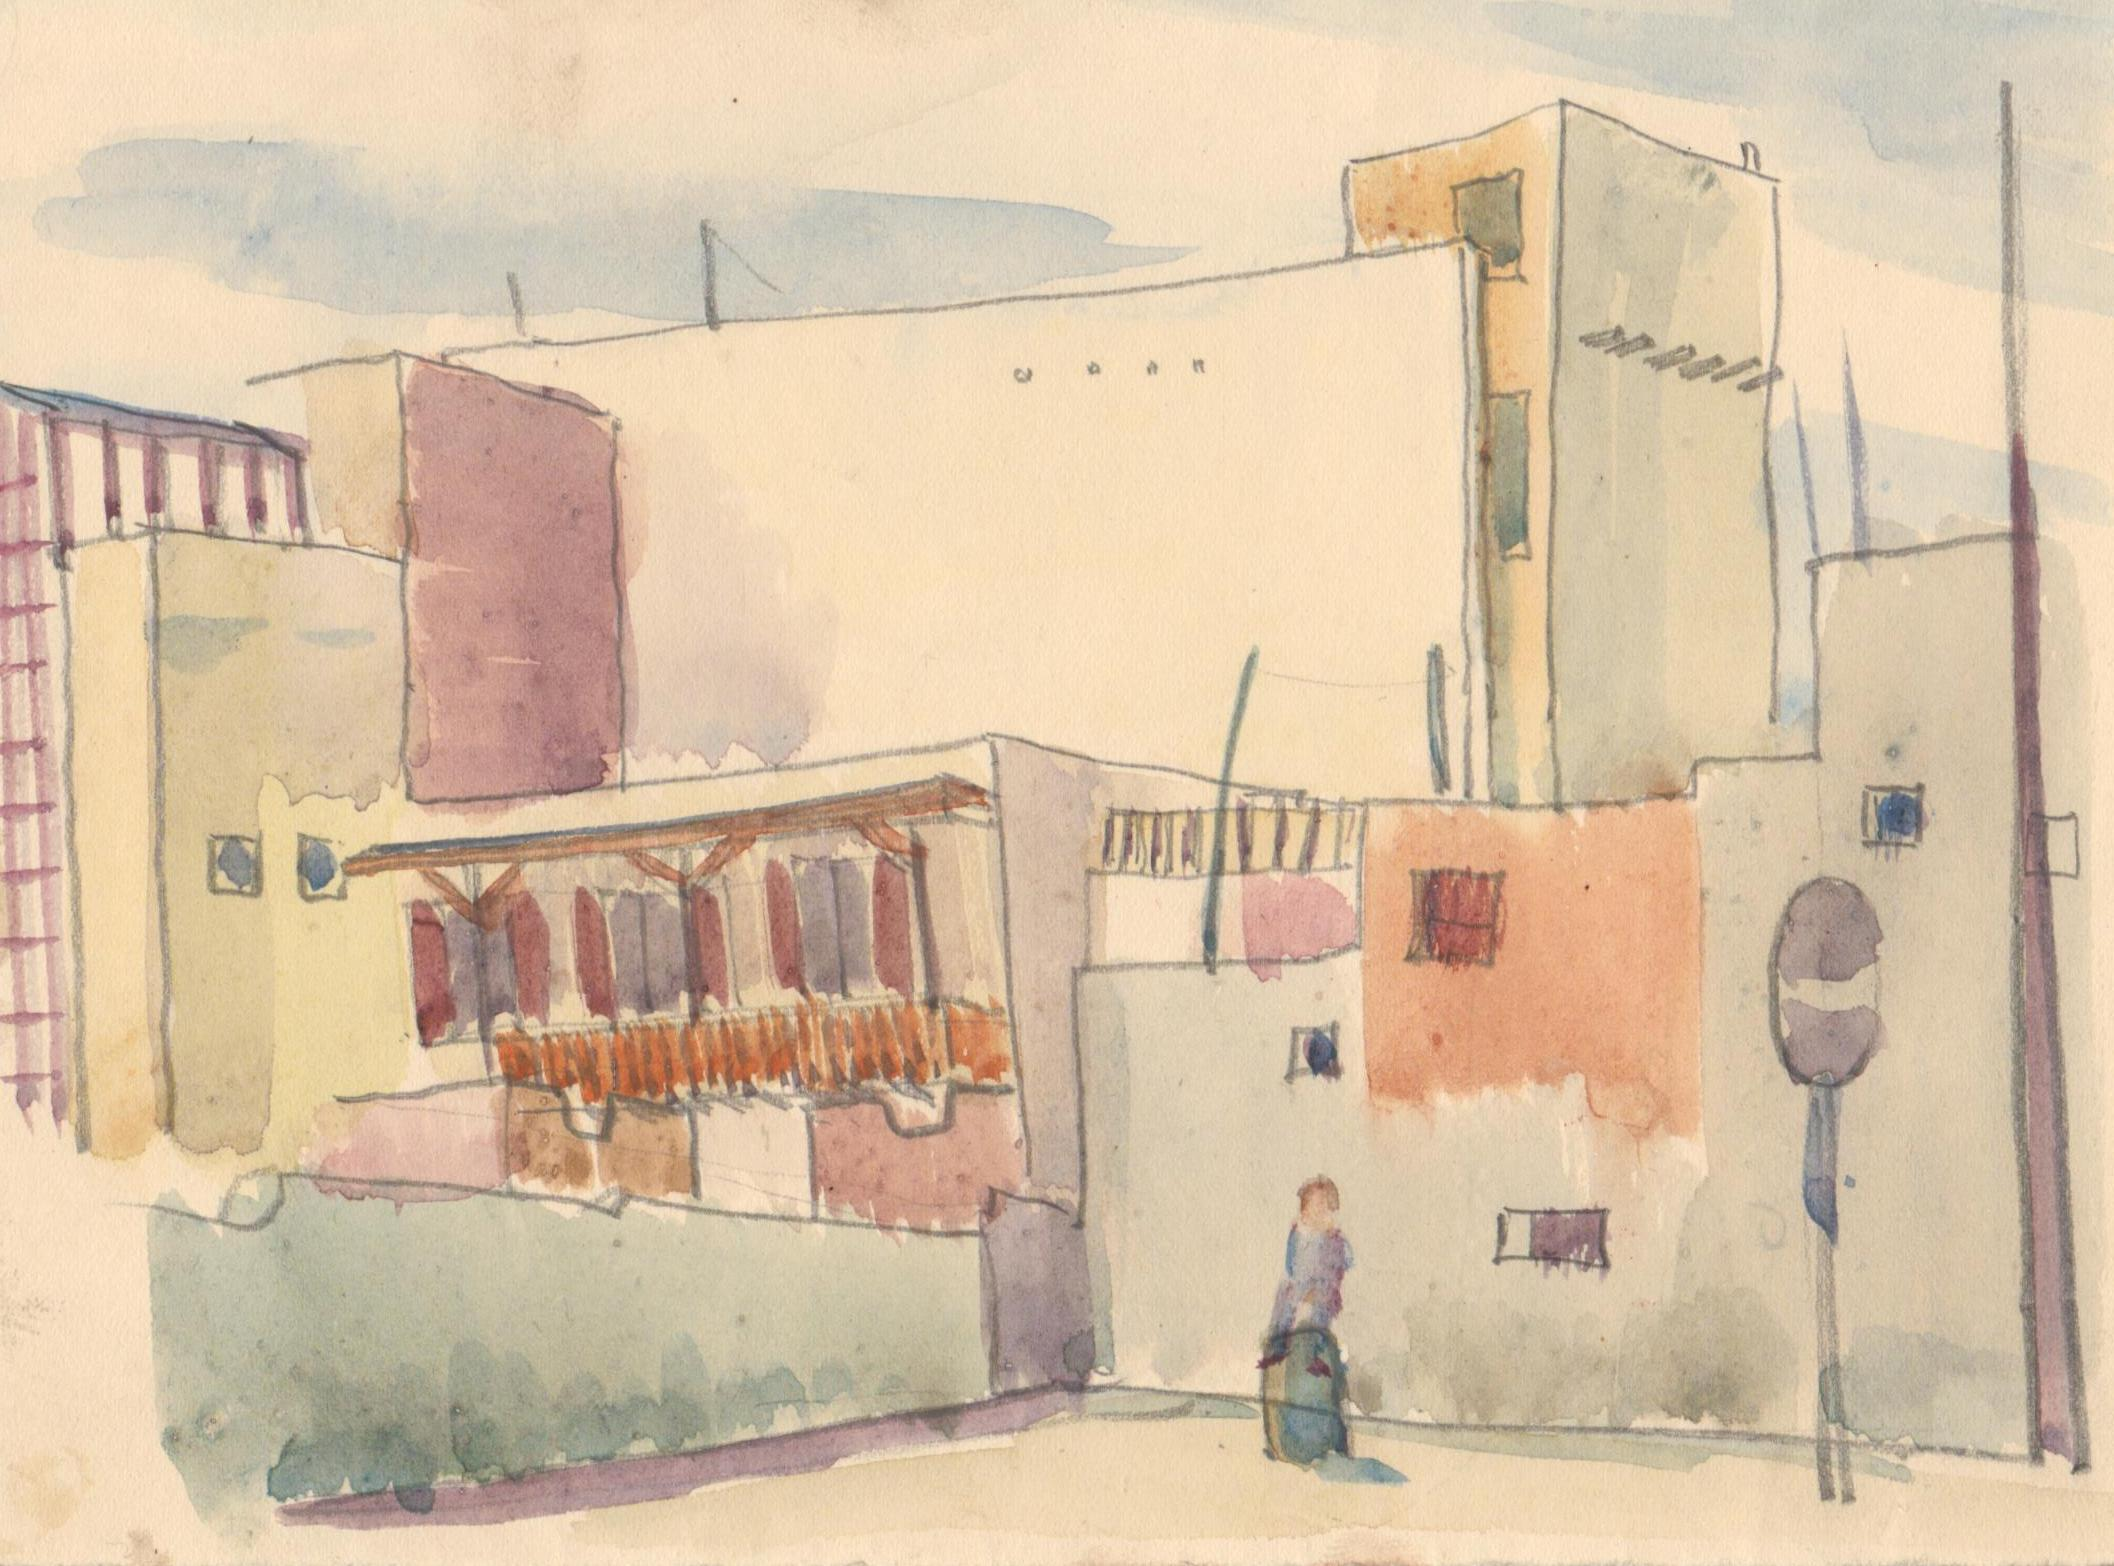 Cairo street scene, by Fred Selby, 1940s